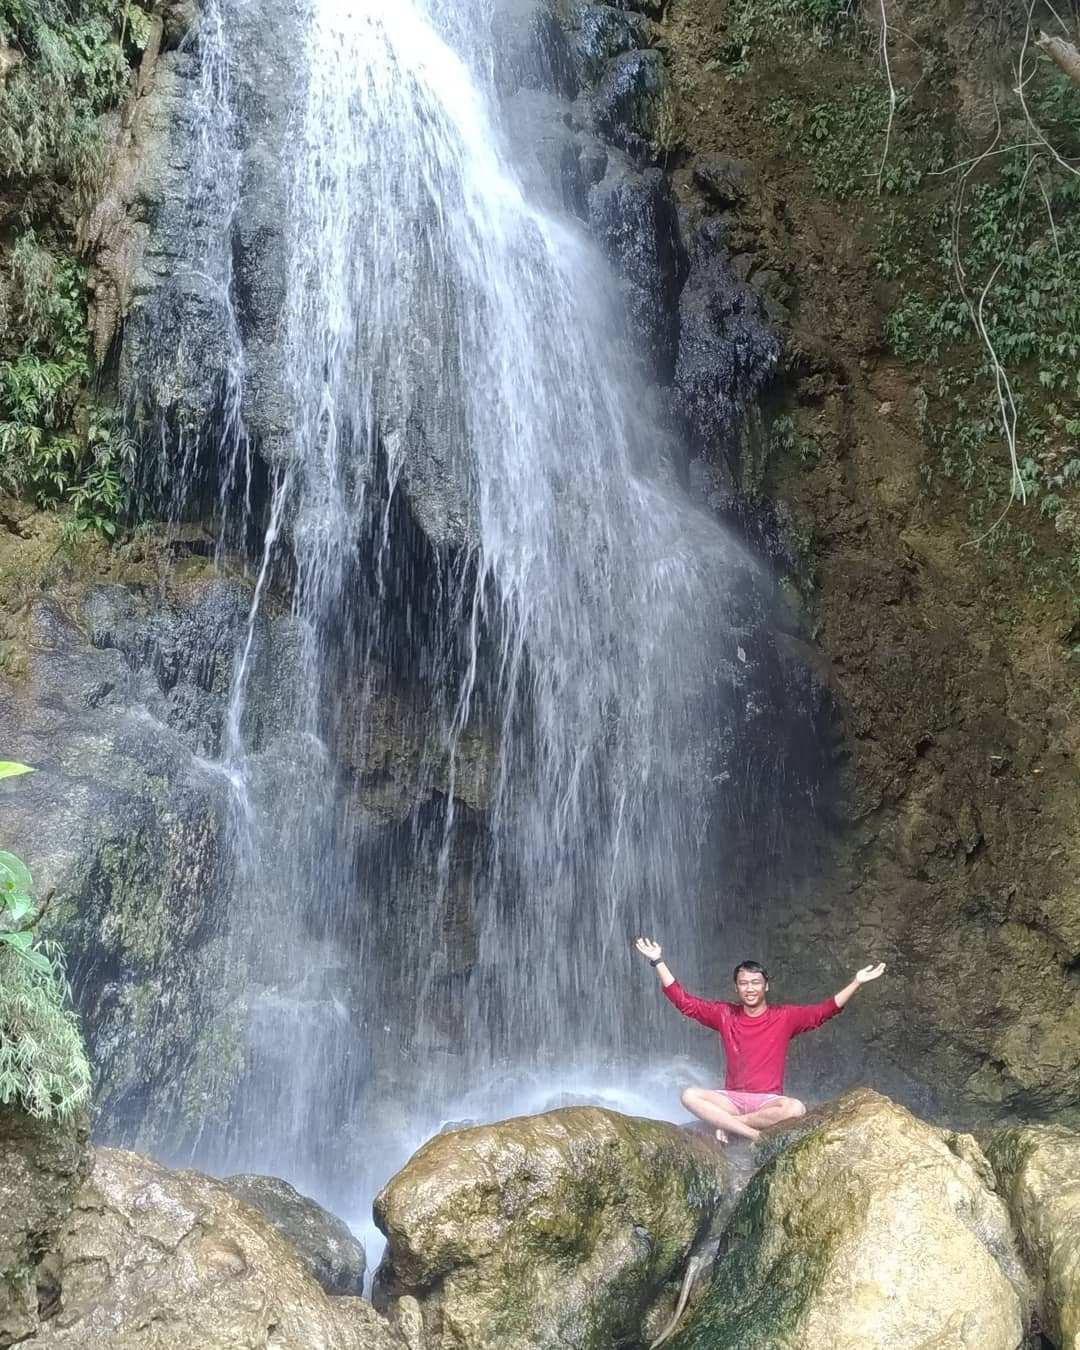 Berfoto di Bawah Air Terjun Sri Gethuk, Image From @ferymccartney